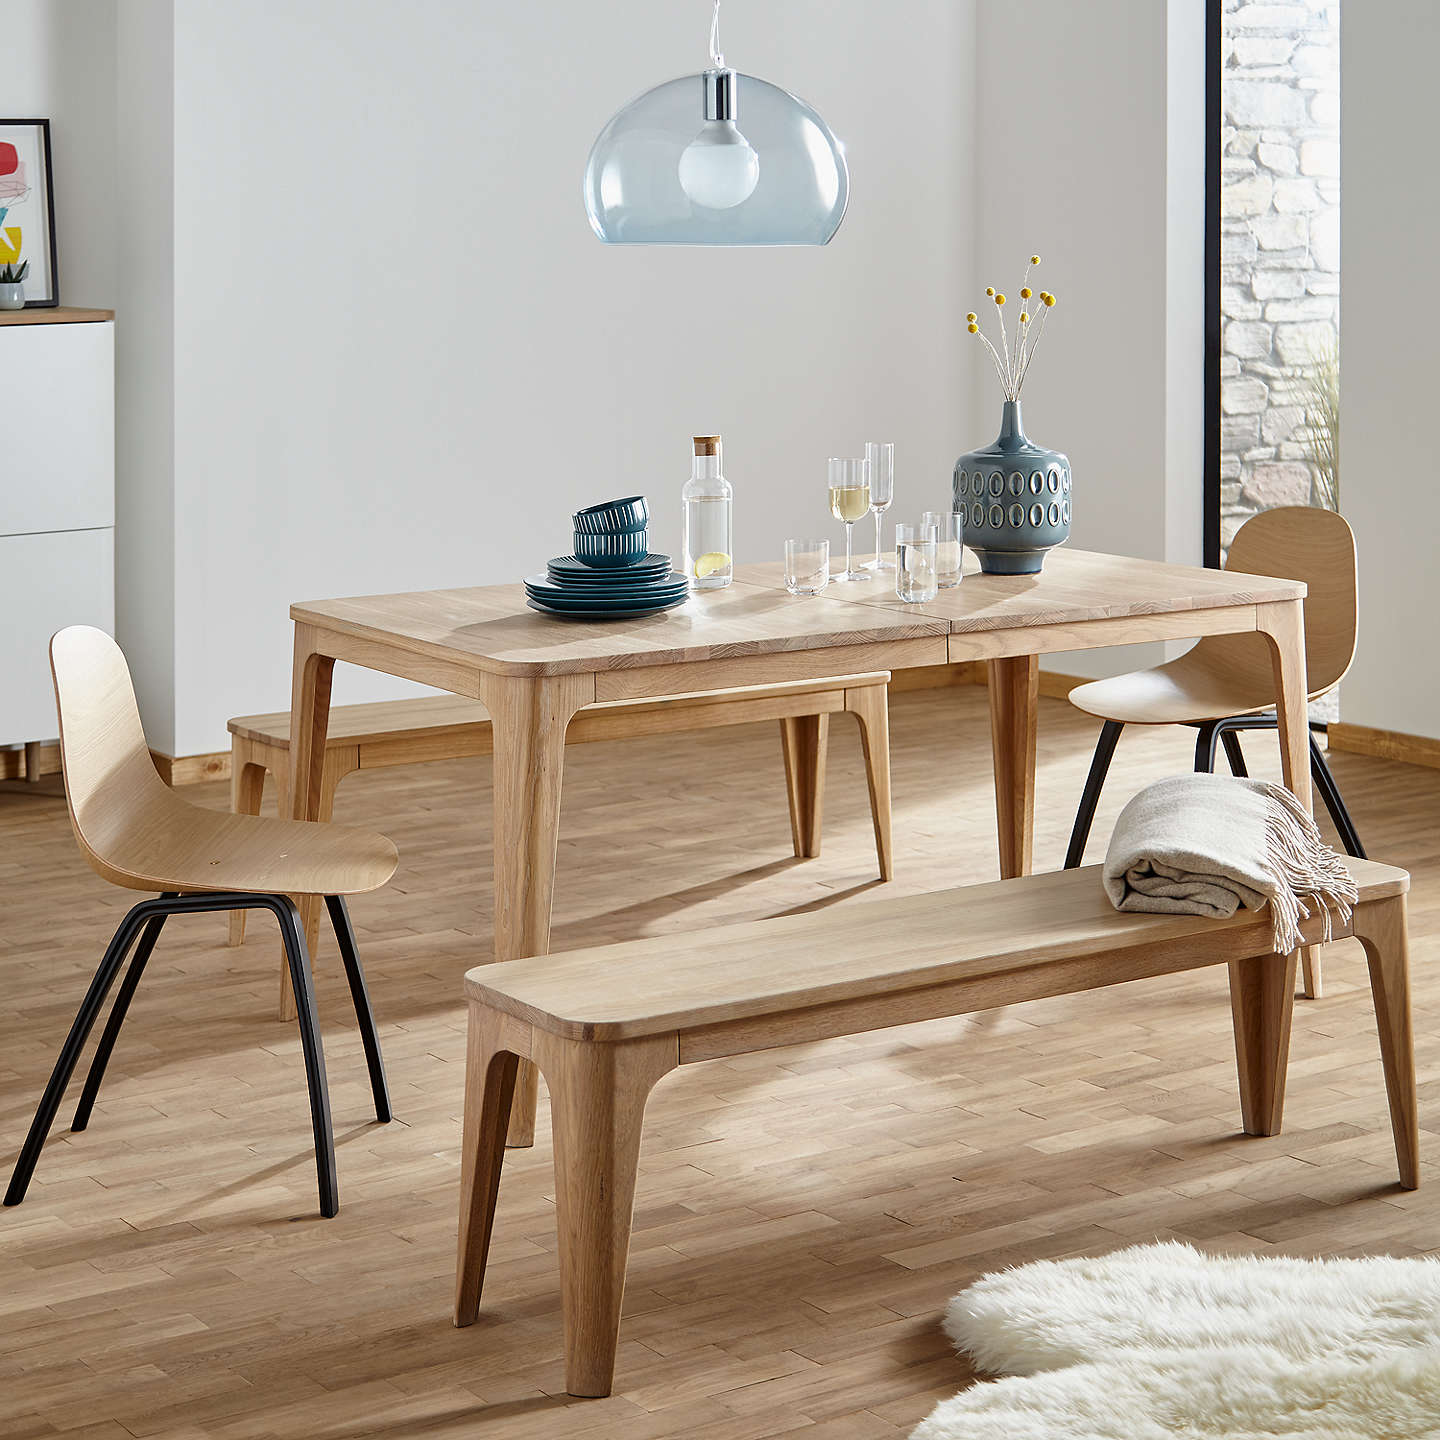 BuyEbbe Gehl For John Lewis Mira 6 8 Seater Extending Dining Table Oak Online